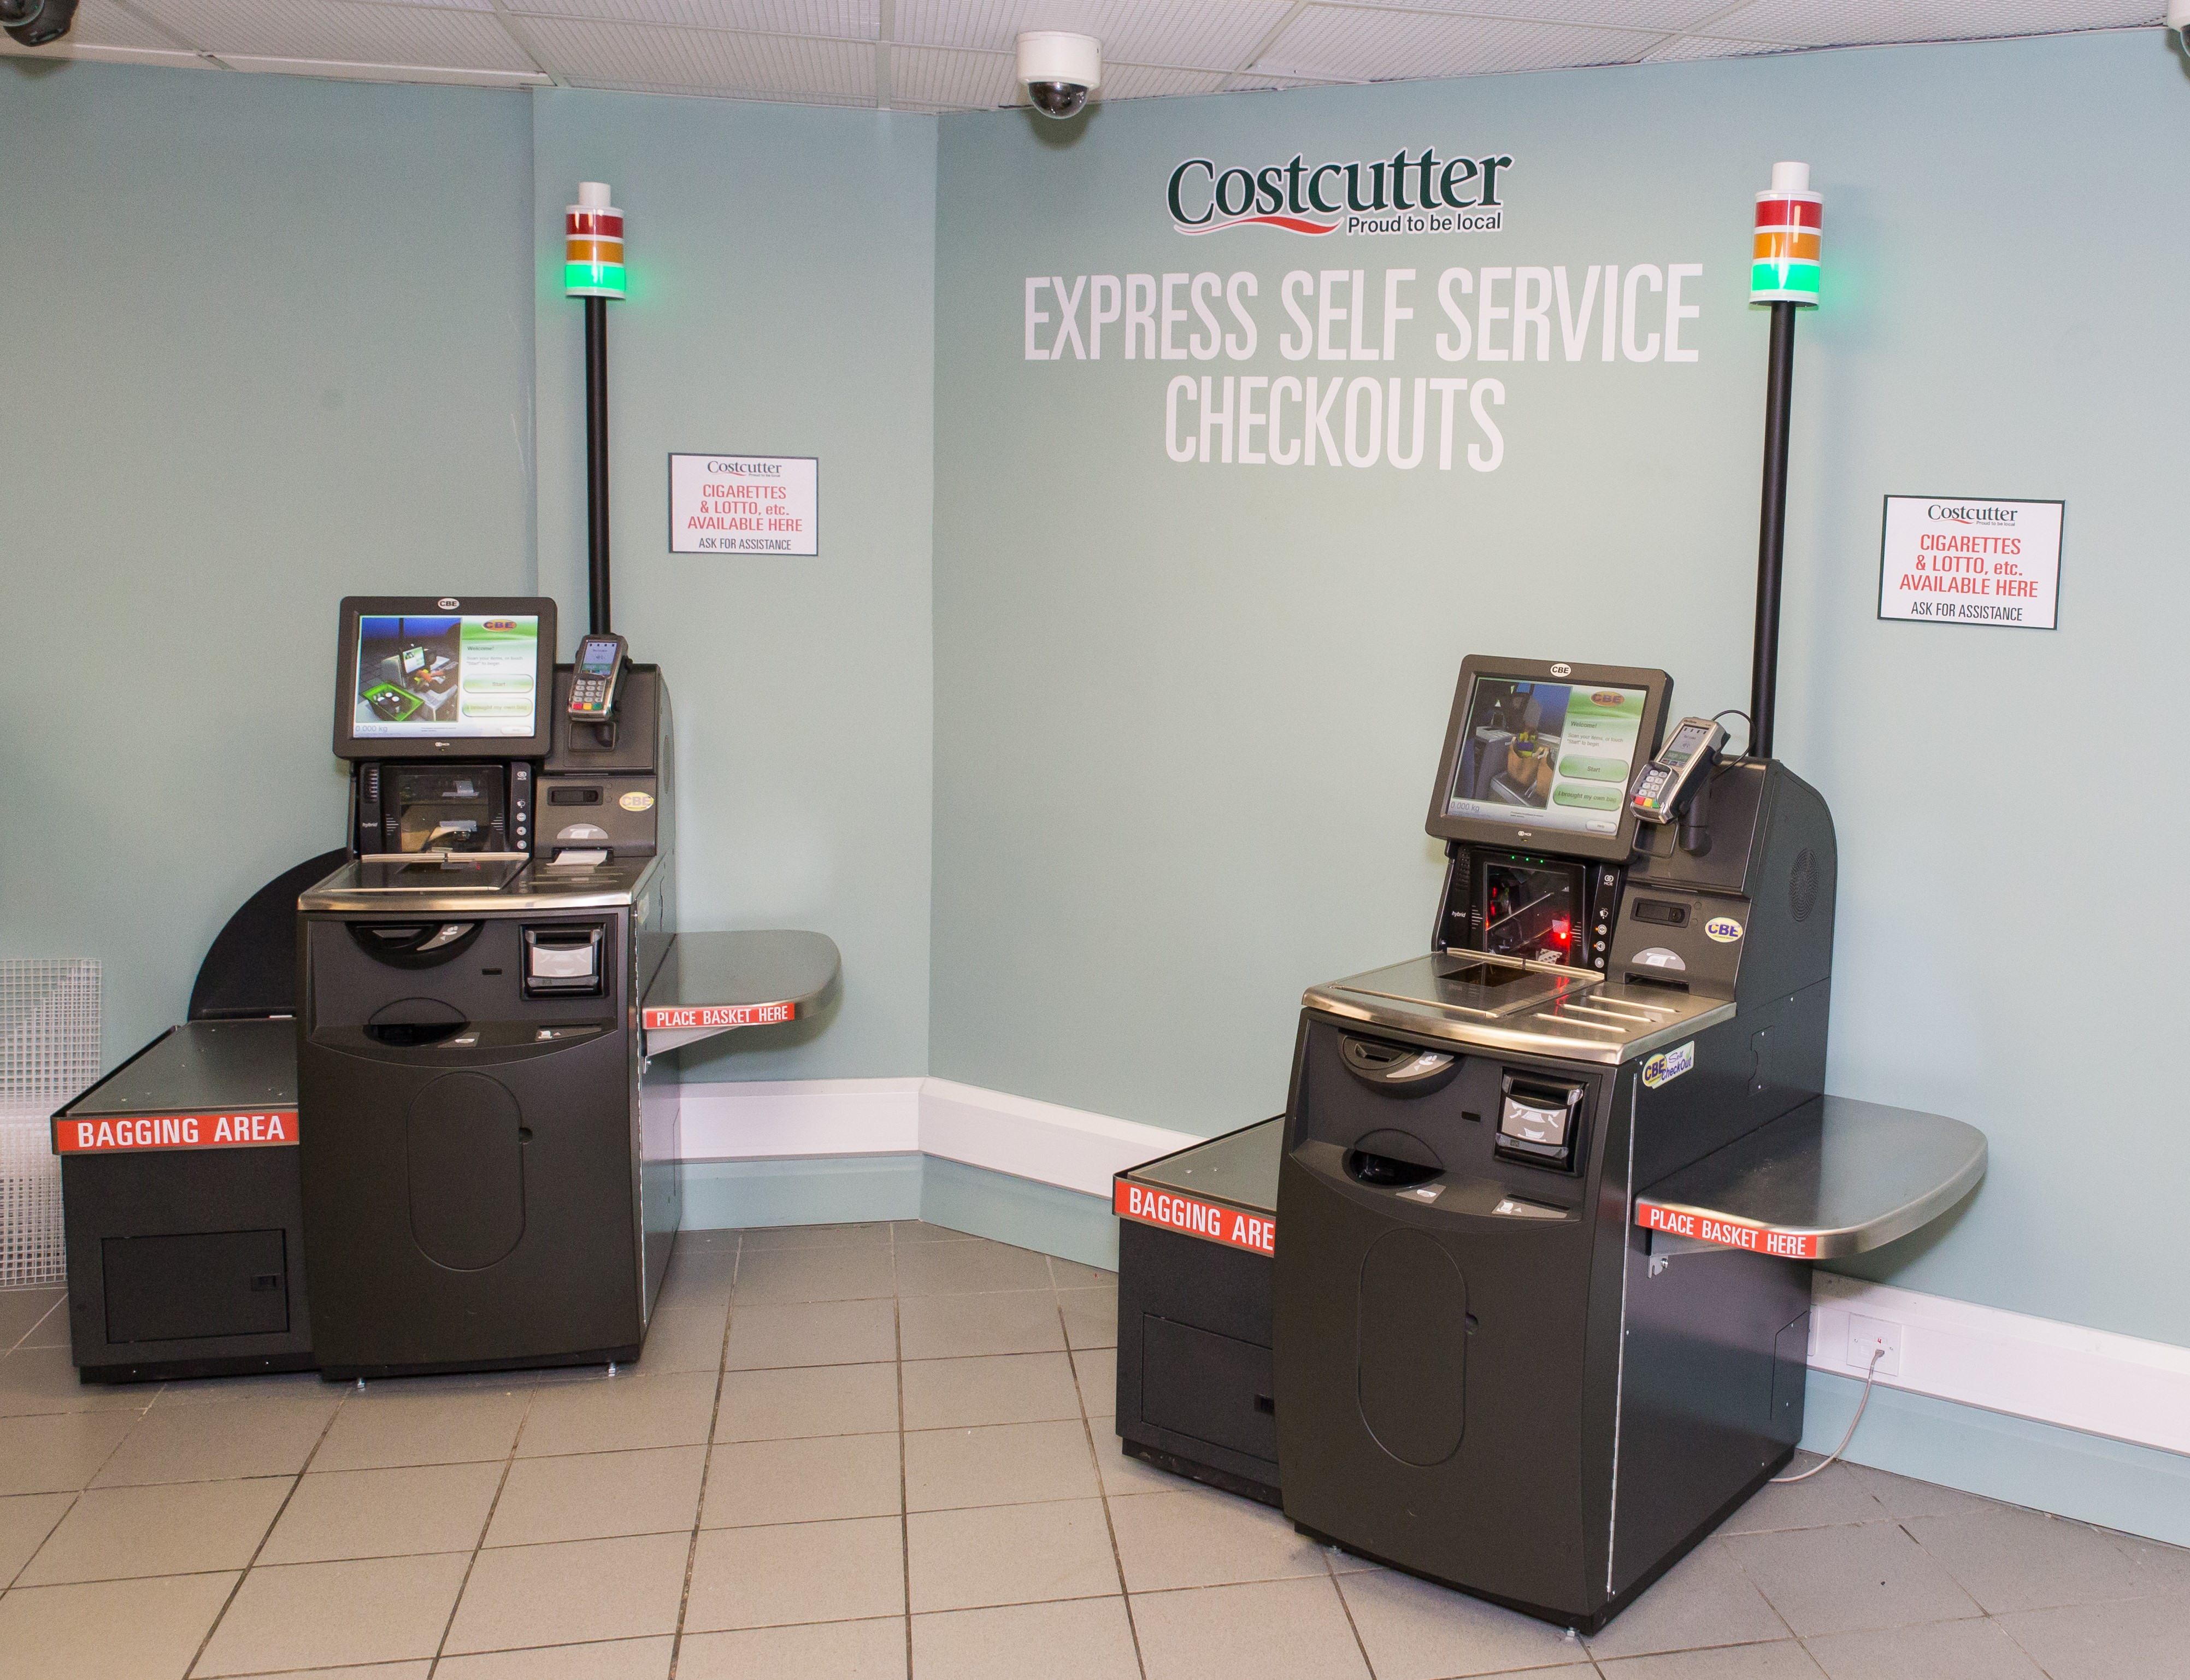 Michael Doherty of Costcutter Carndonagh on Self-Checkouts during Covid-19